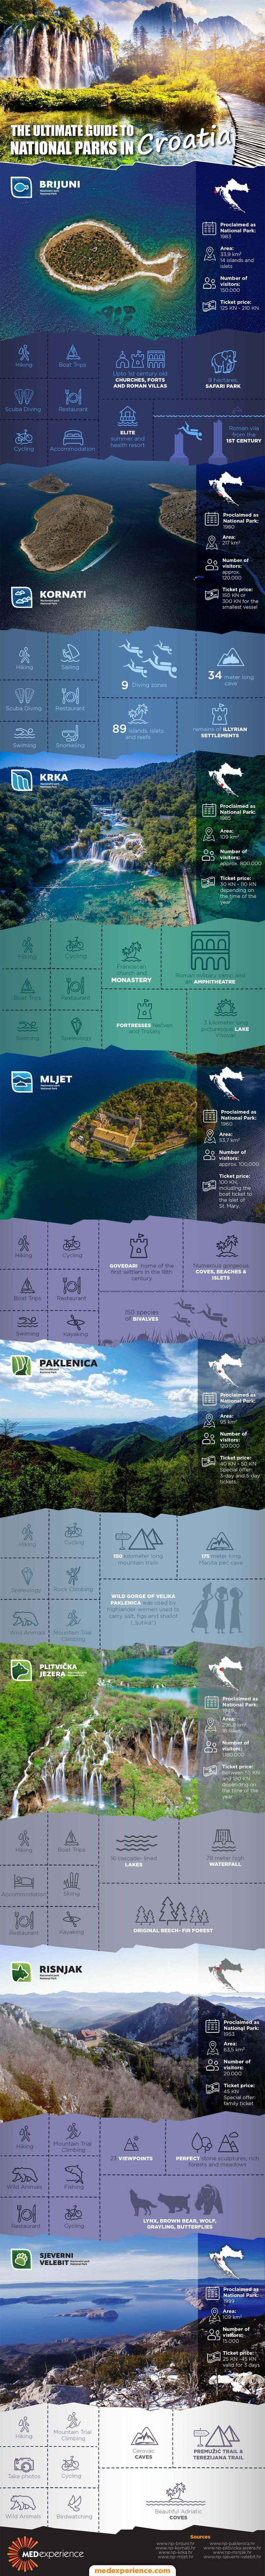 Infographic: The ultimate guide to National parks in Croatia